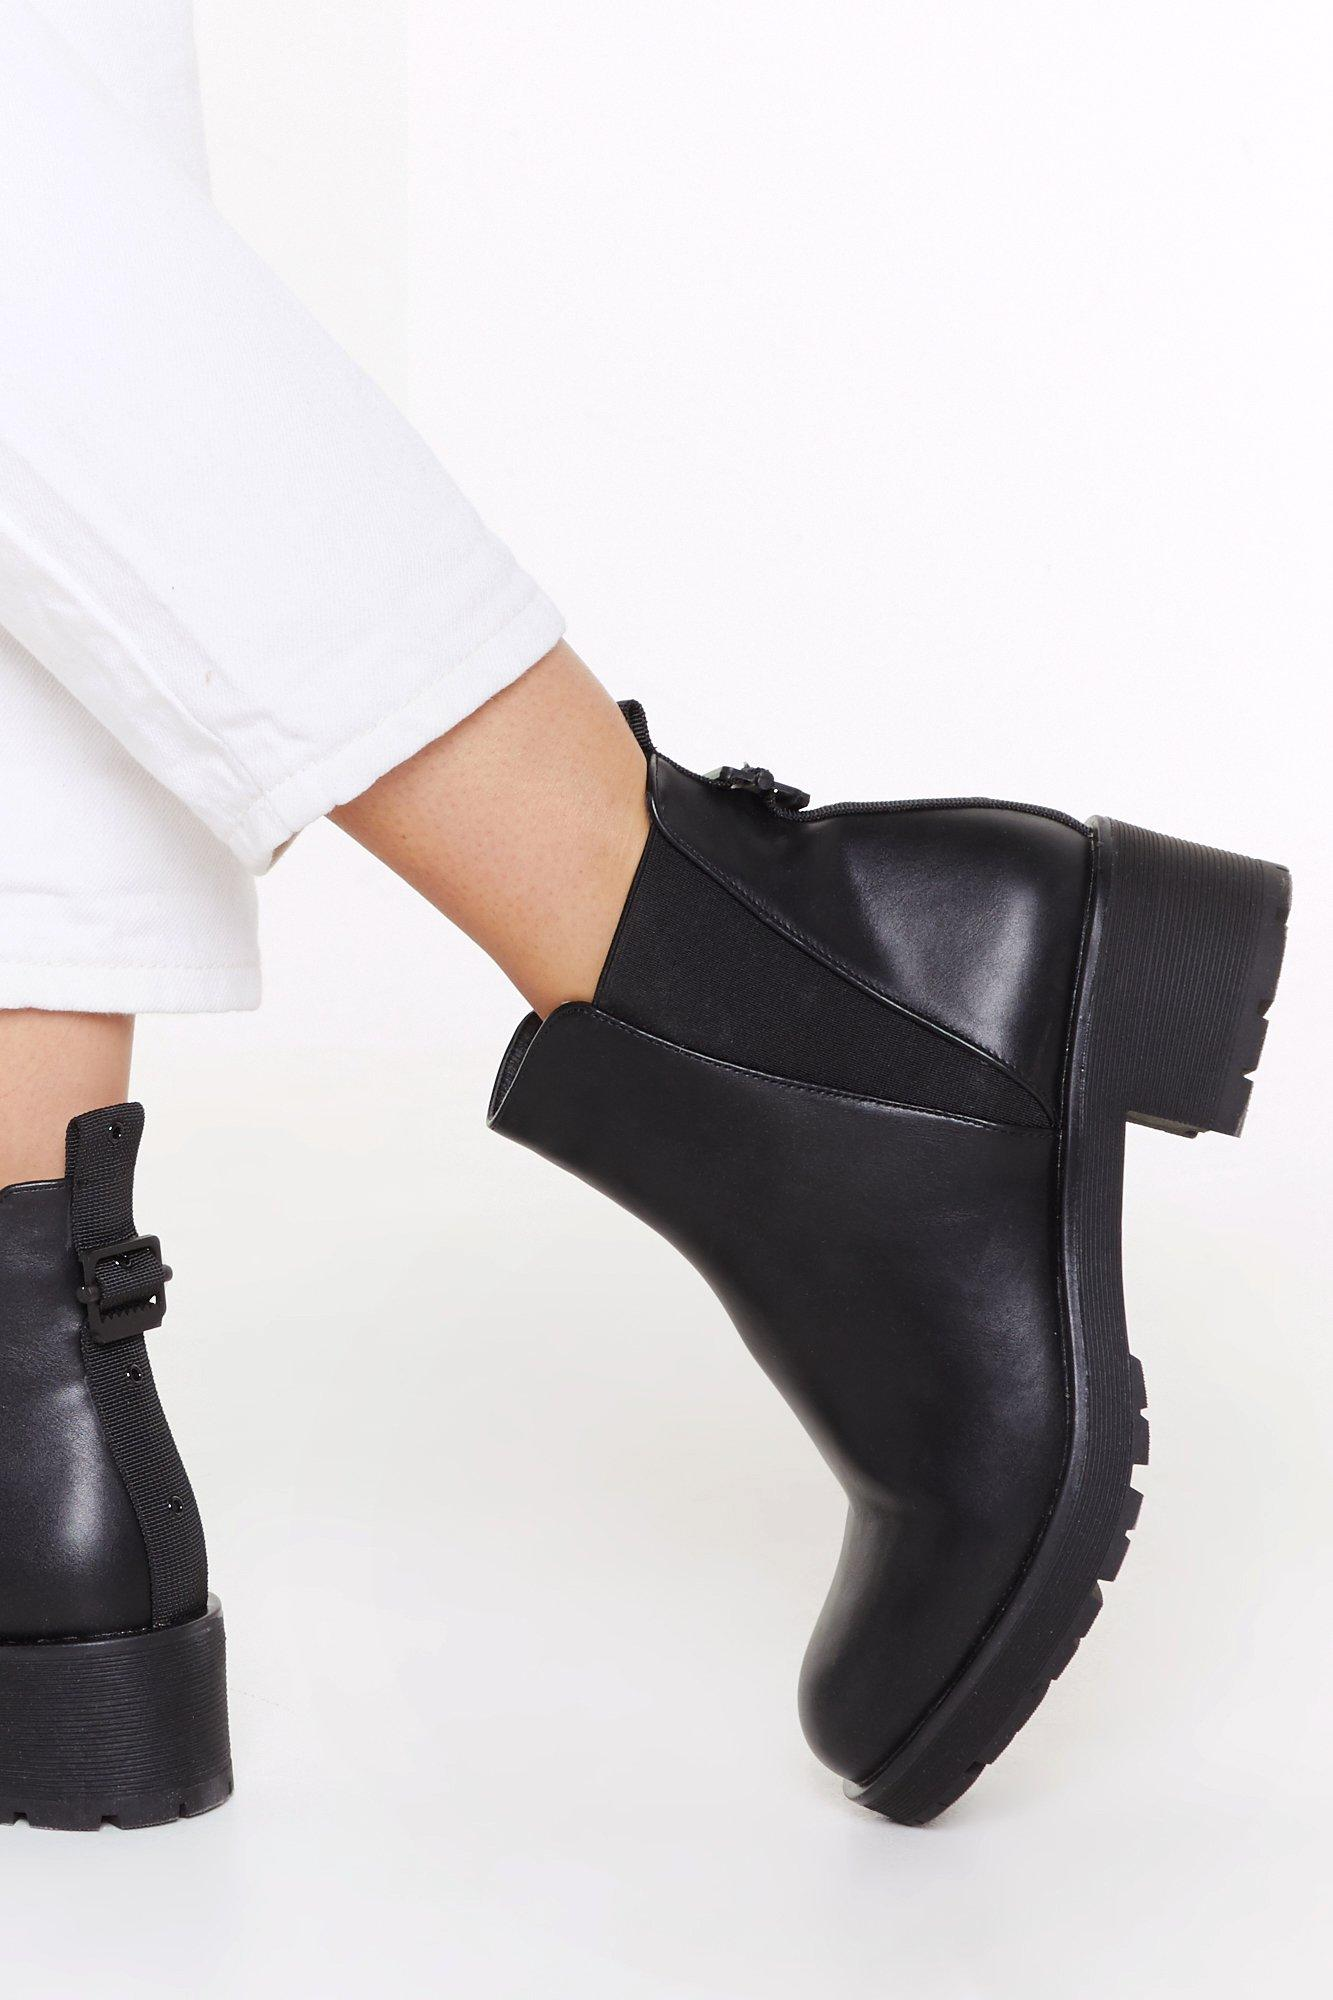 Image of V Gusset Cleated Chelsea Boot